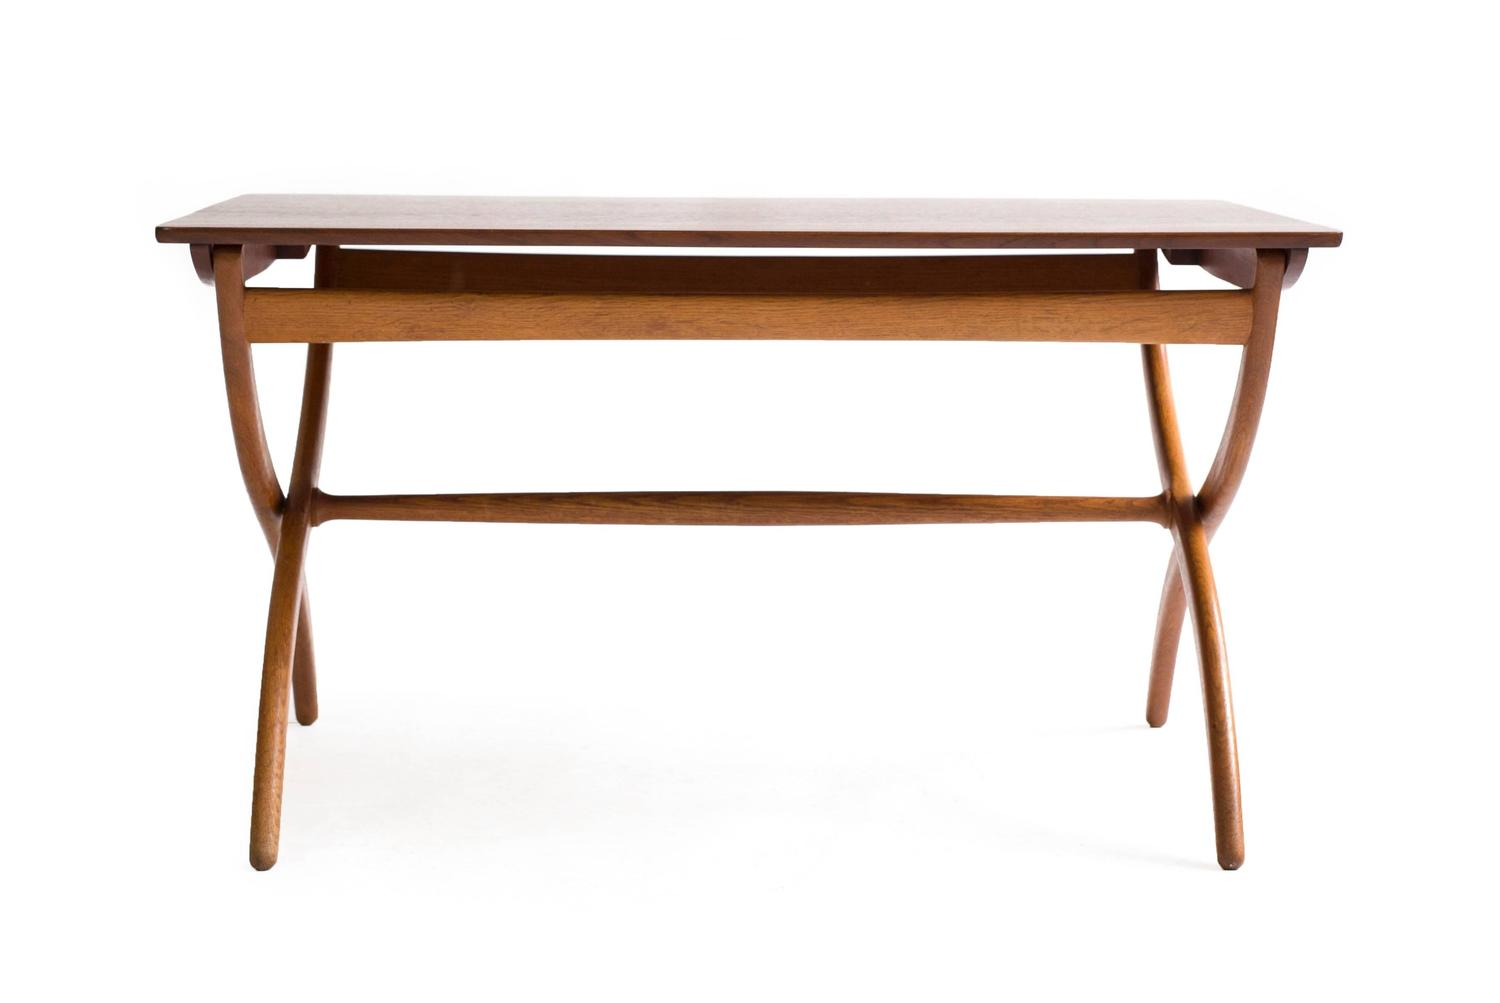 Ole Wanscher Adjustable Coffee Table For Rud Rasmussen 1951 For Sale At 1stdibs